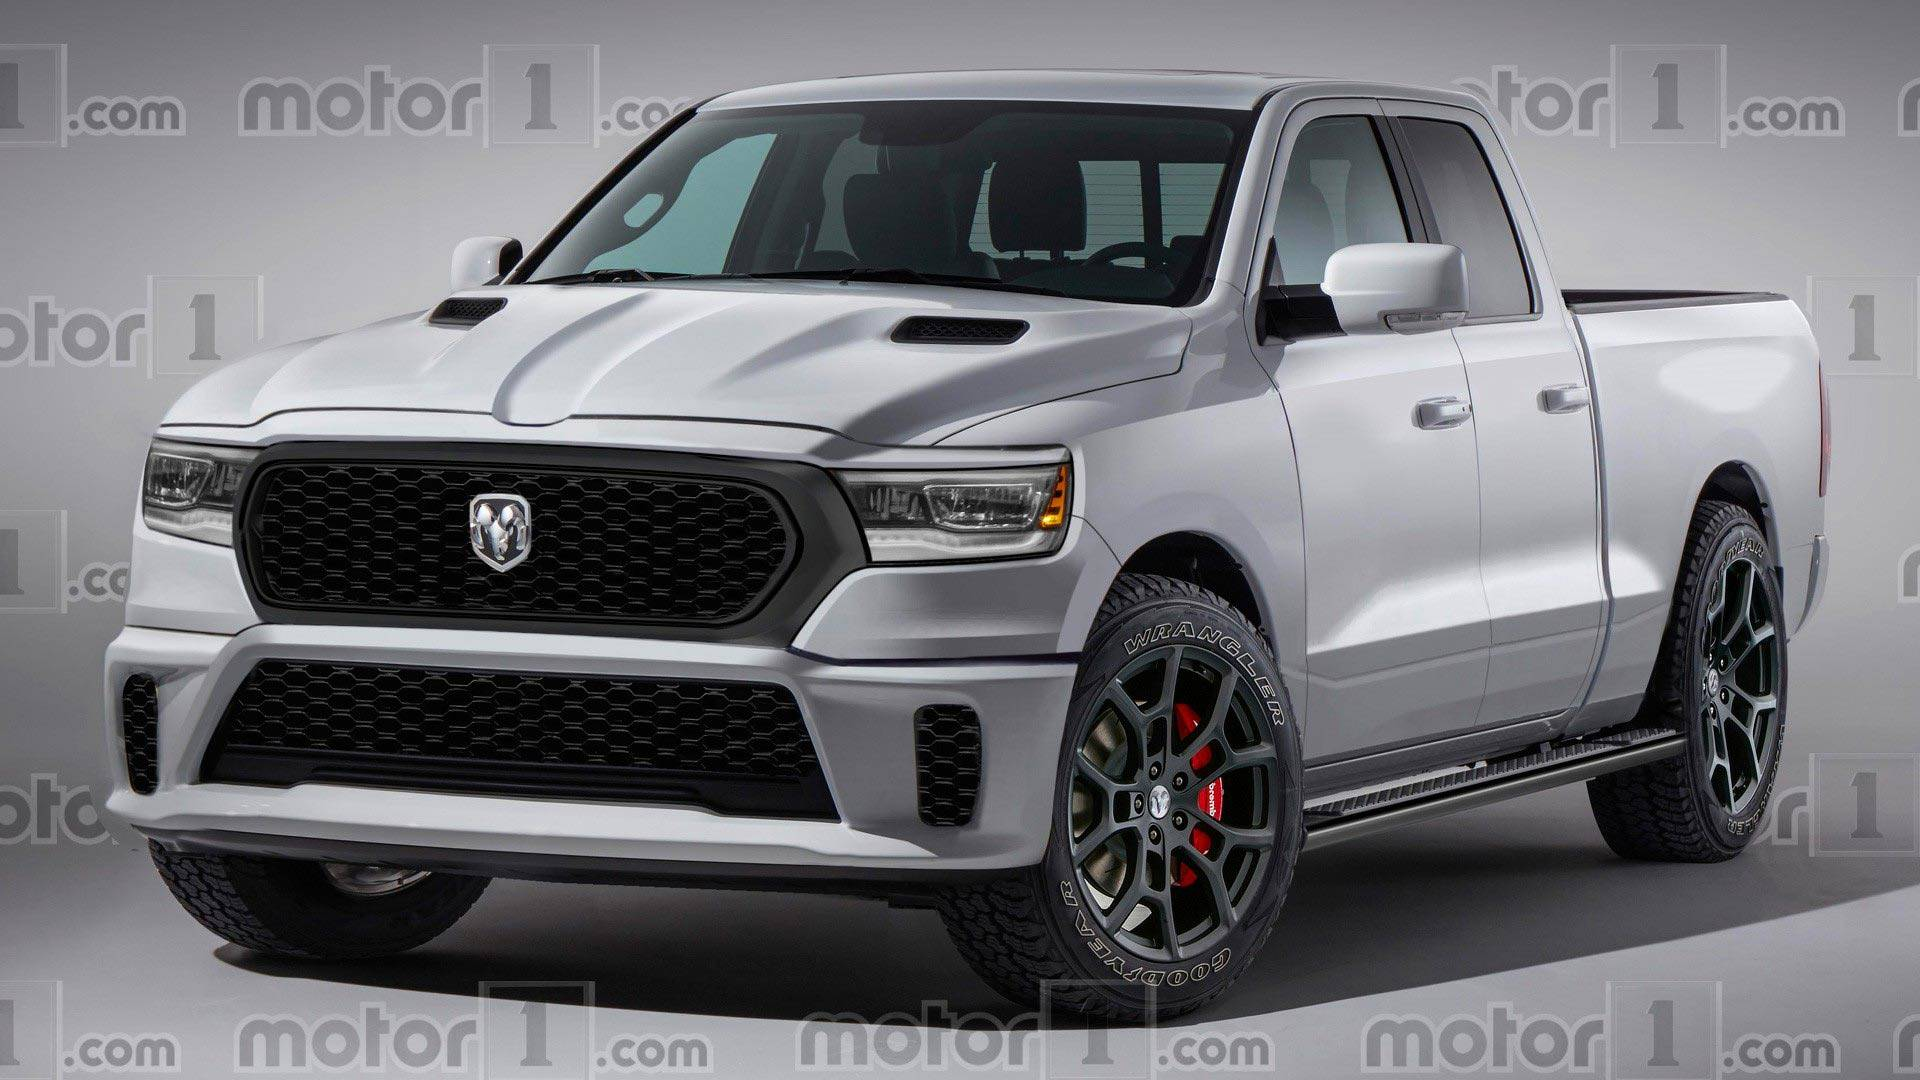 25 All New 2020 RAM 1500 Interior